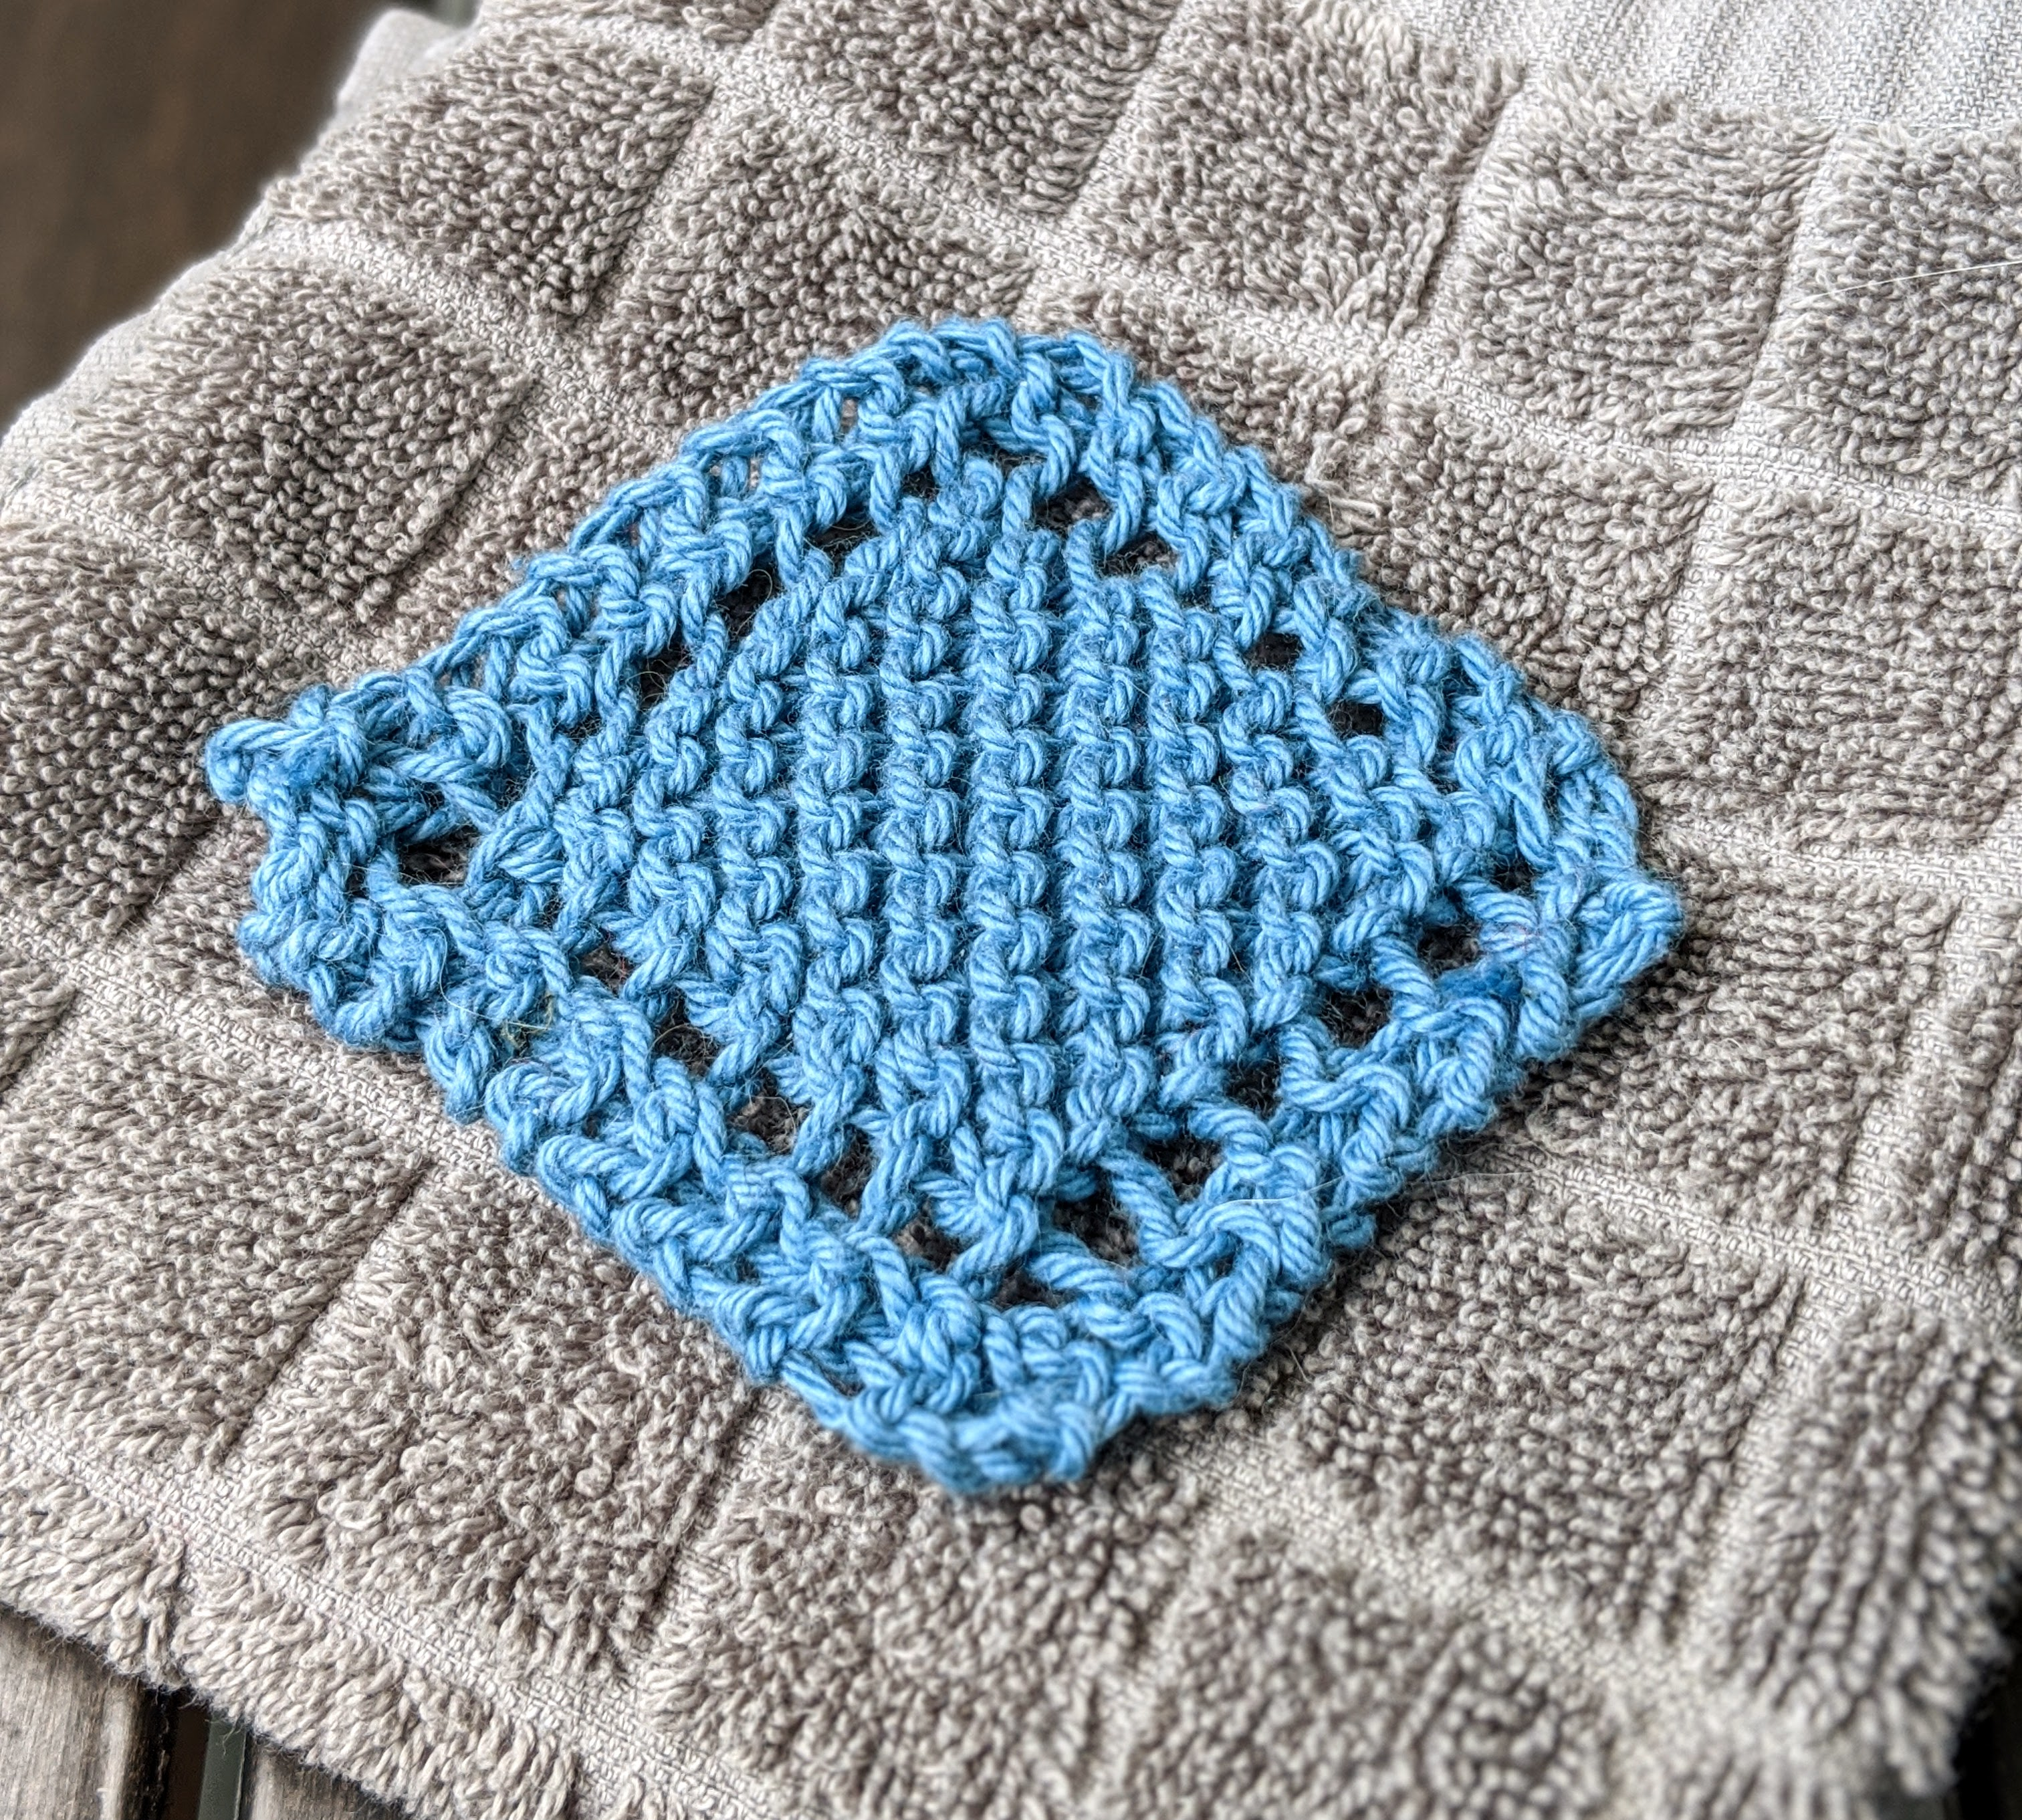 A blue reusable cotton face scrubby sits on a grey washcloth